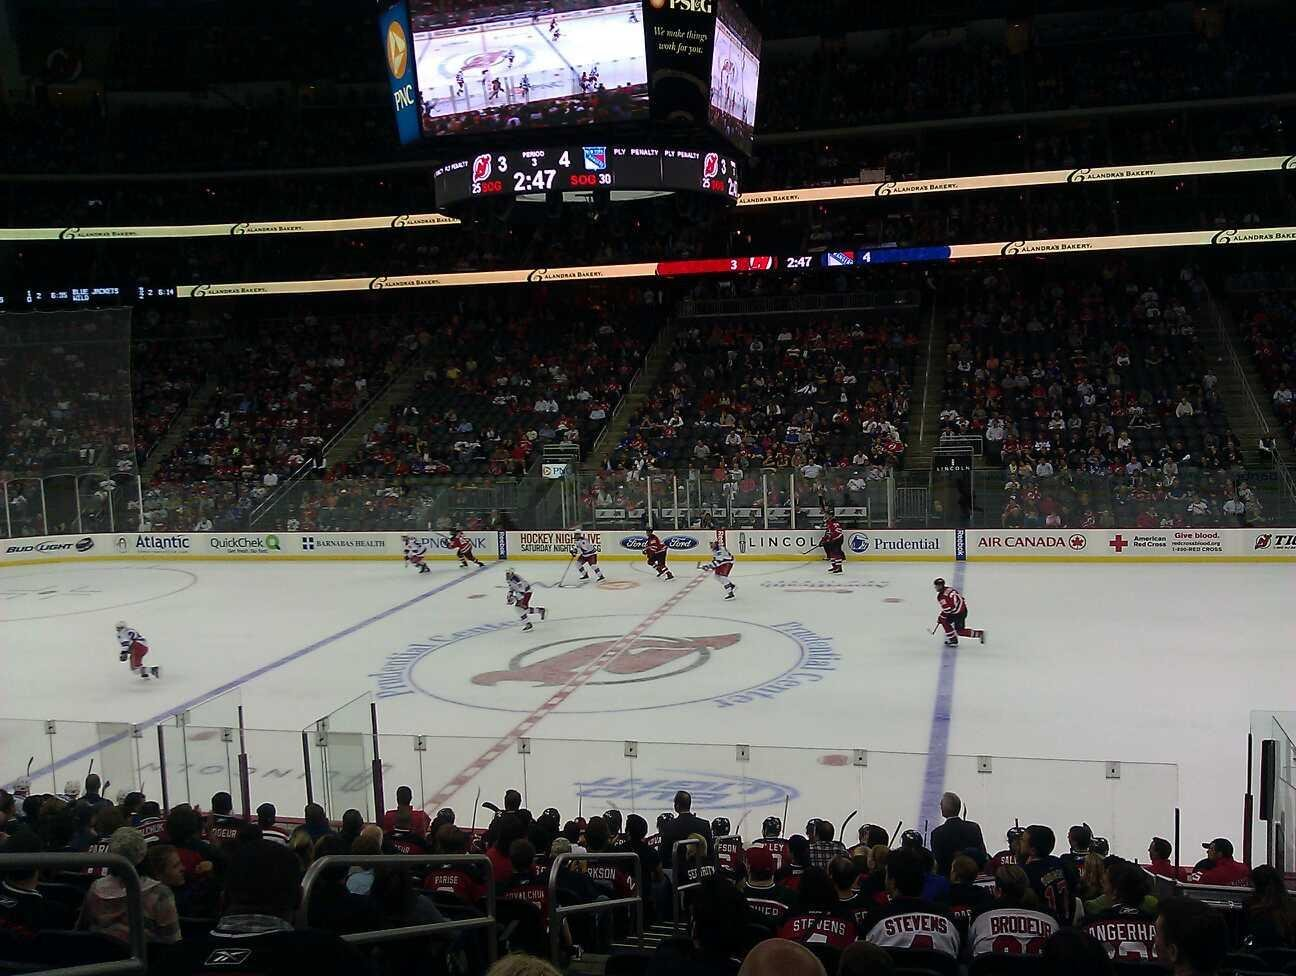 Prudential Center Section 9 Row 17 Seat 16